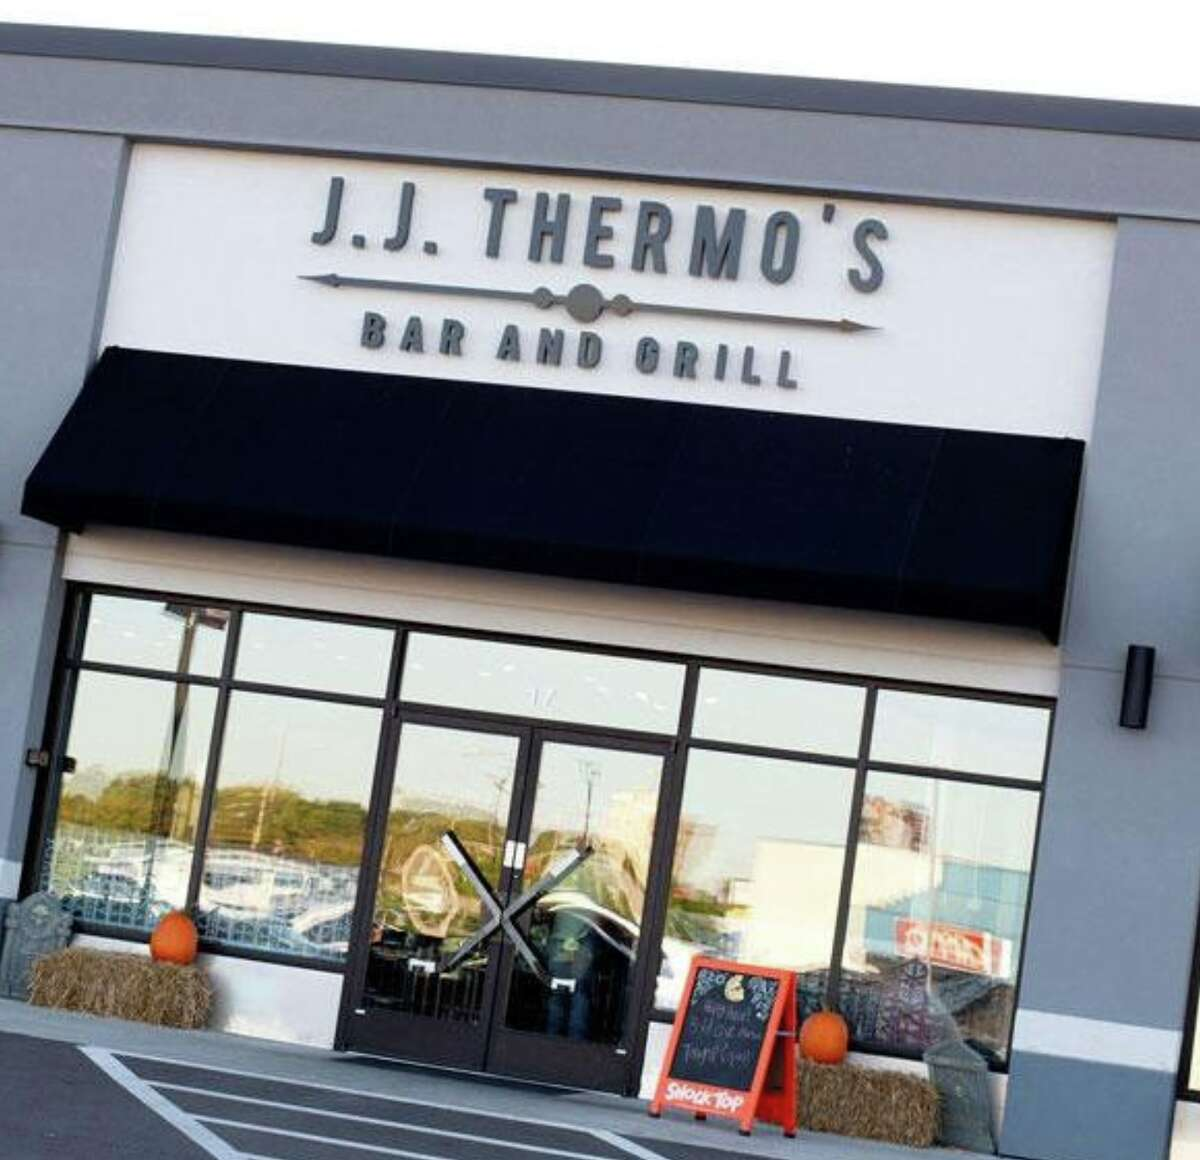 J. J. Thermo's is located at 17 Eastgate Plaza in East Alton.